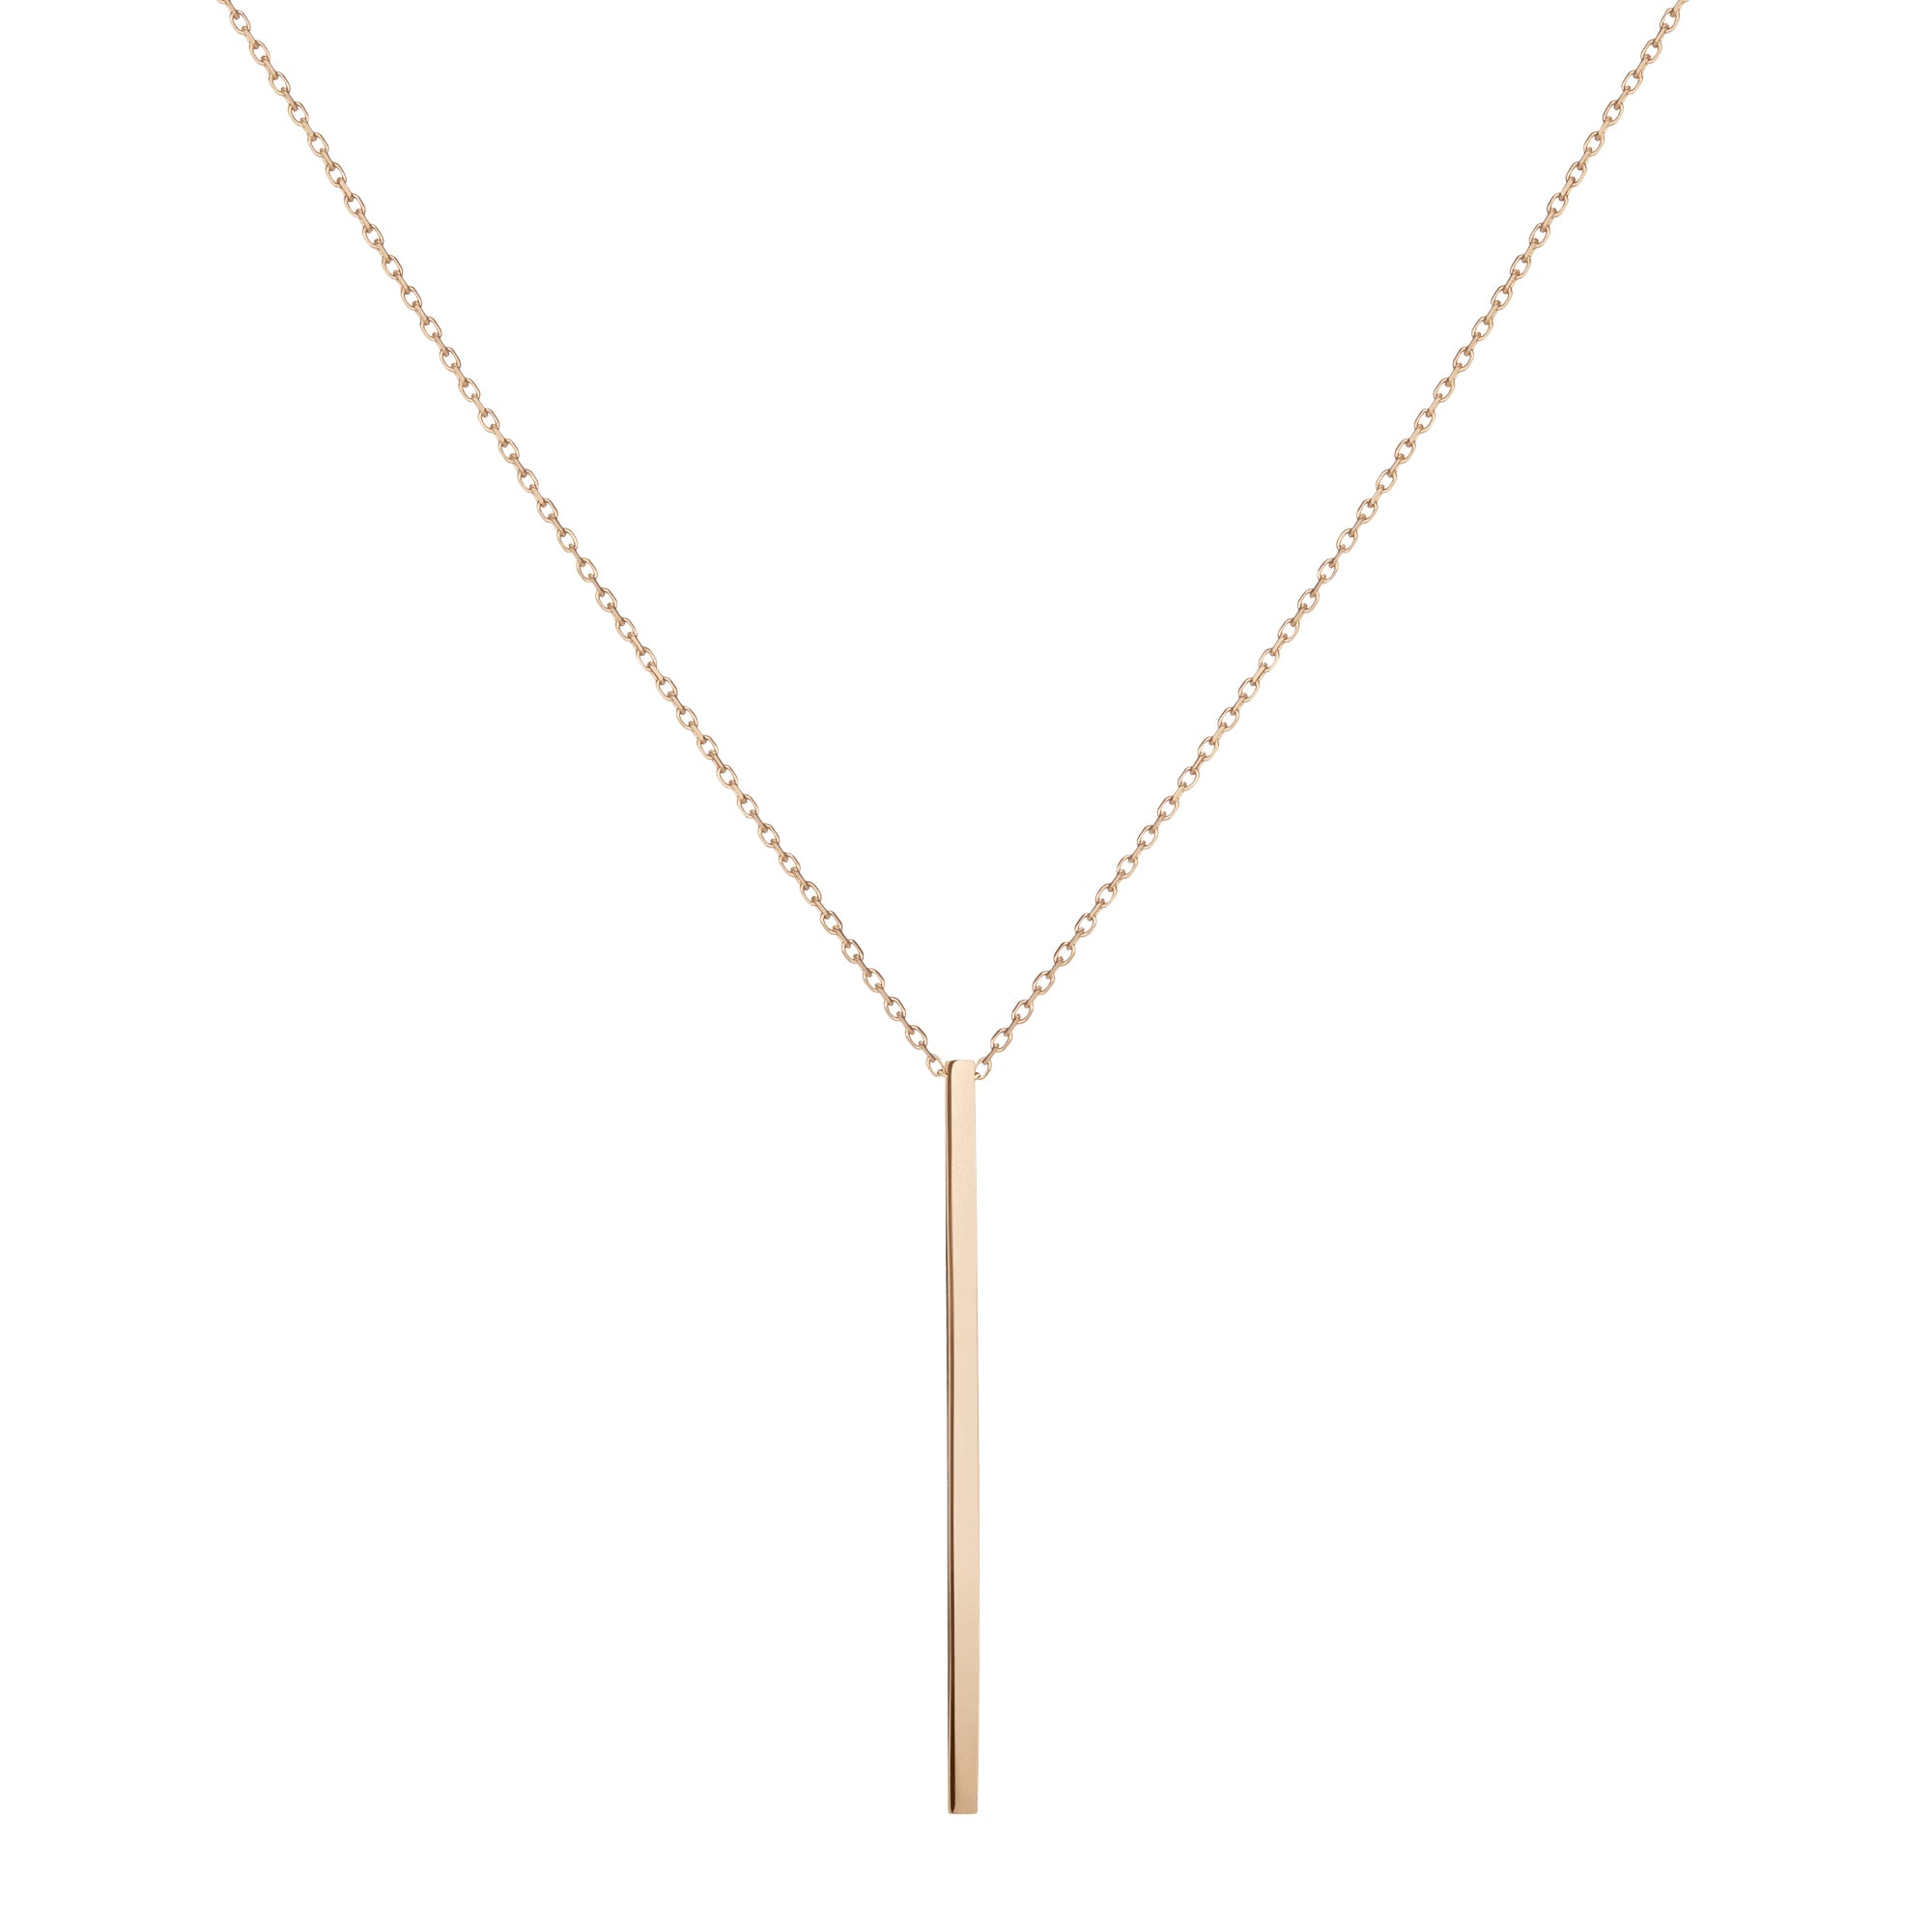 Long Gold Necklace - 1